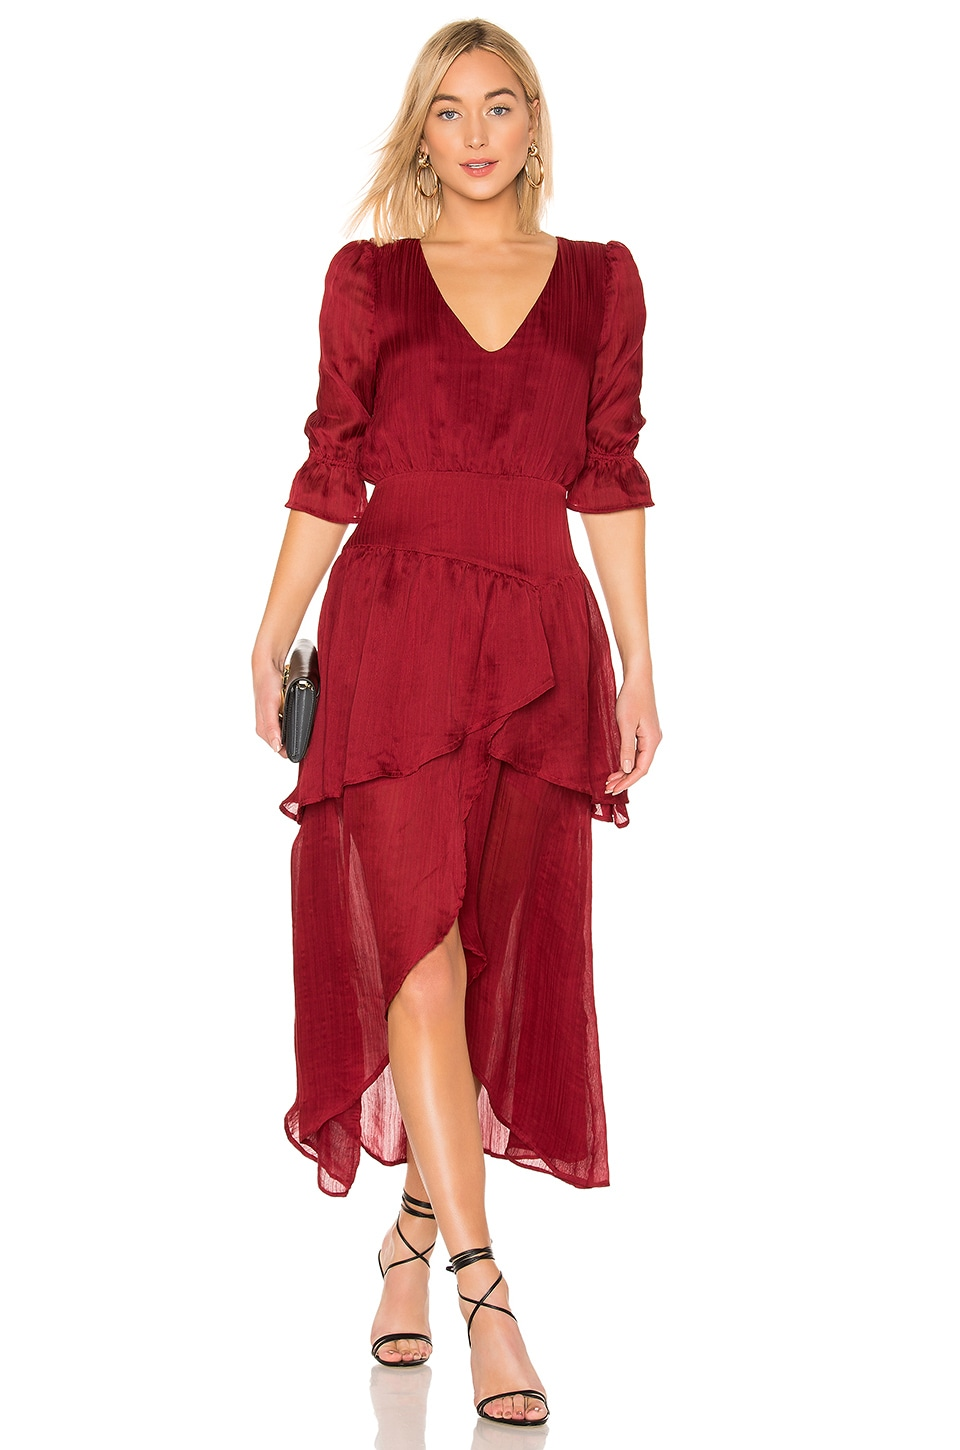 House of Harlow 1960 ROBE ONEL